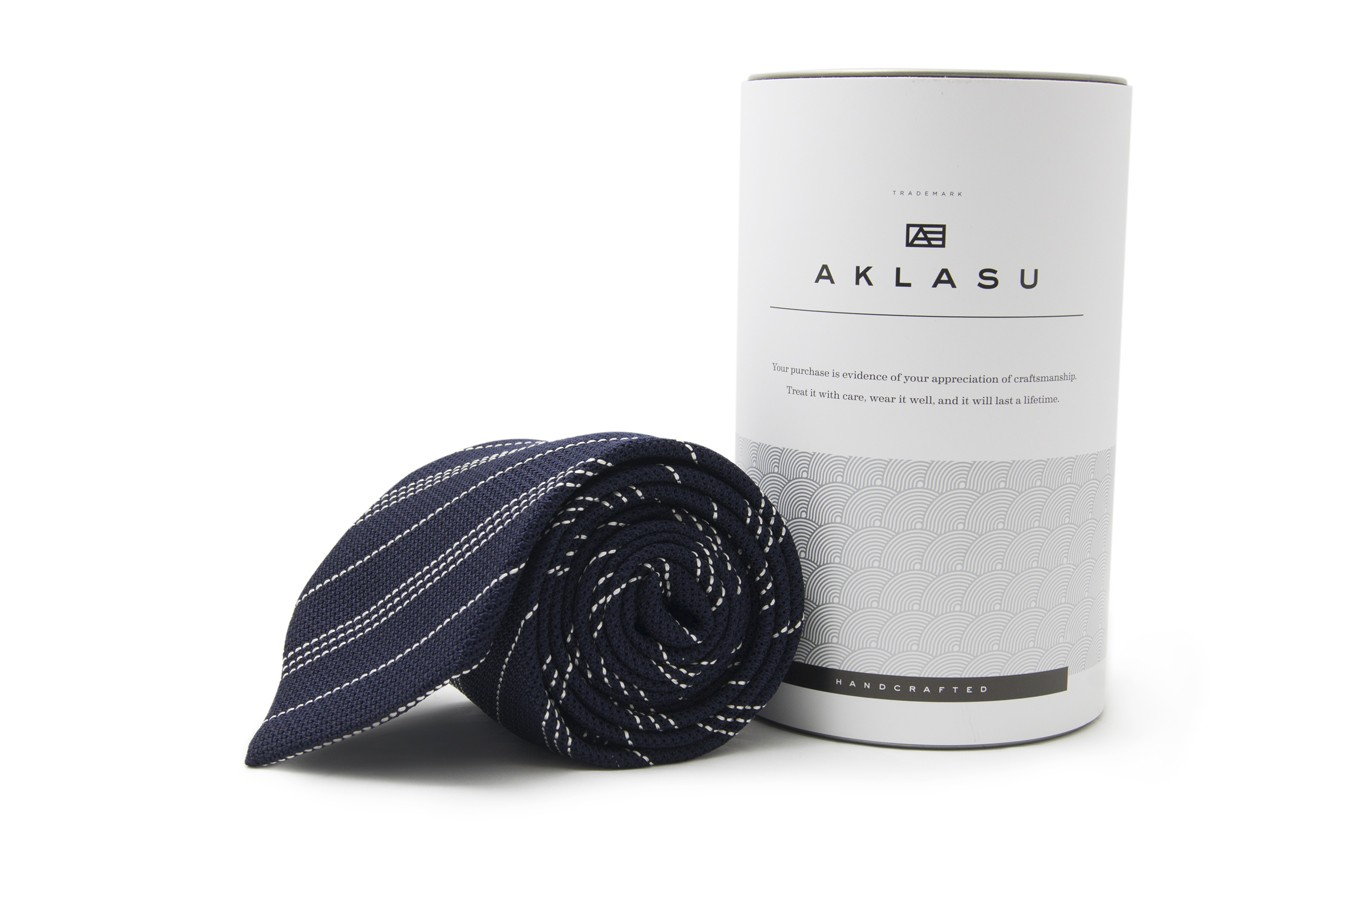 Ensemble style AKLASU tie review